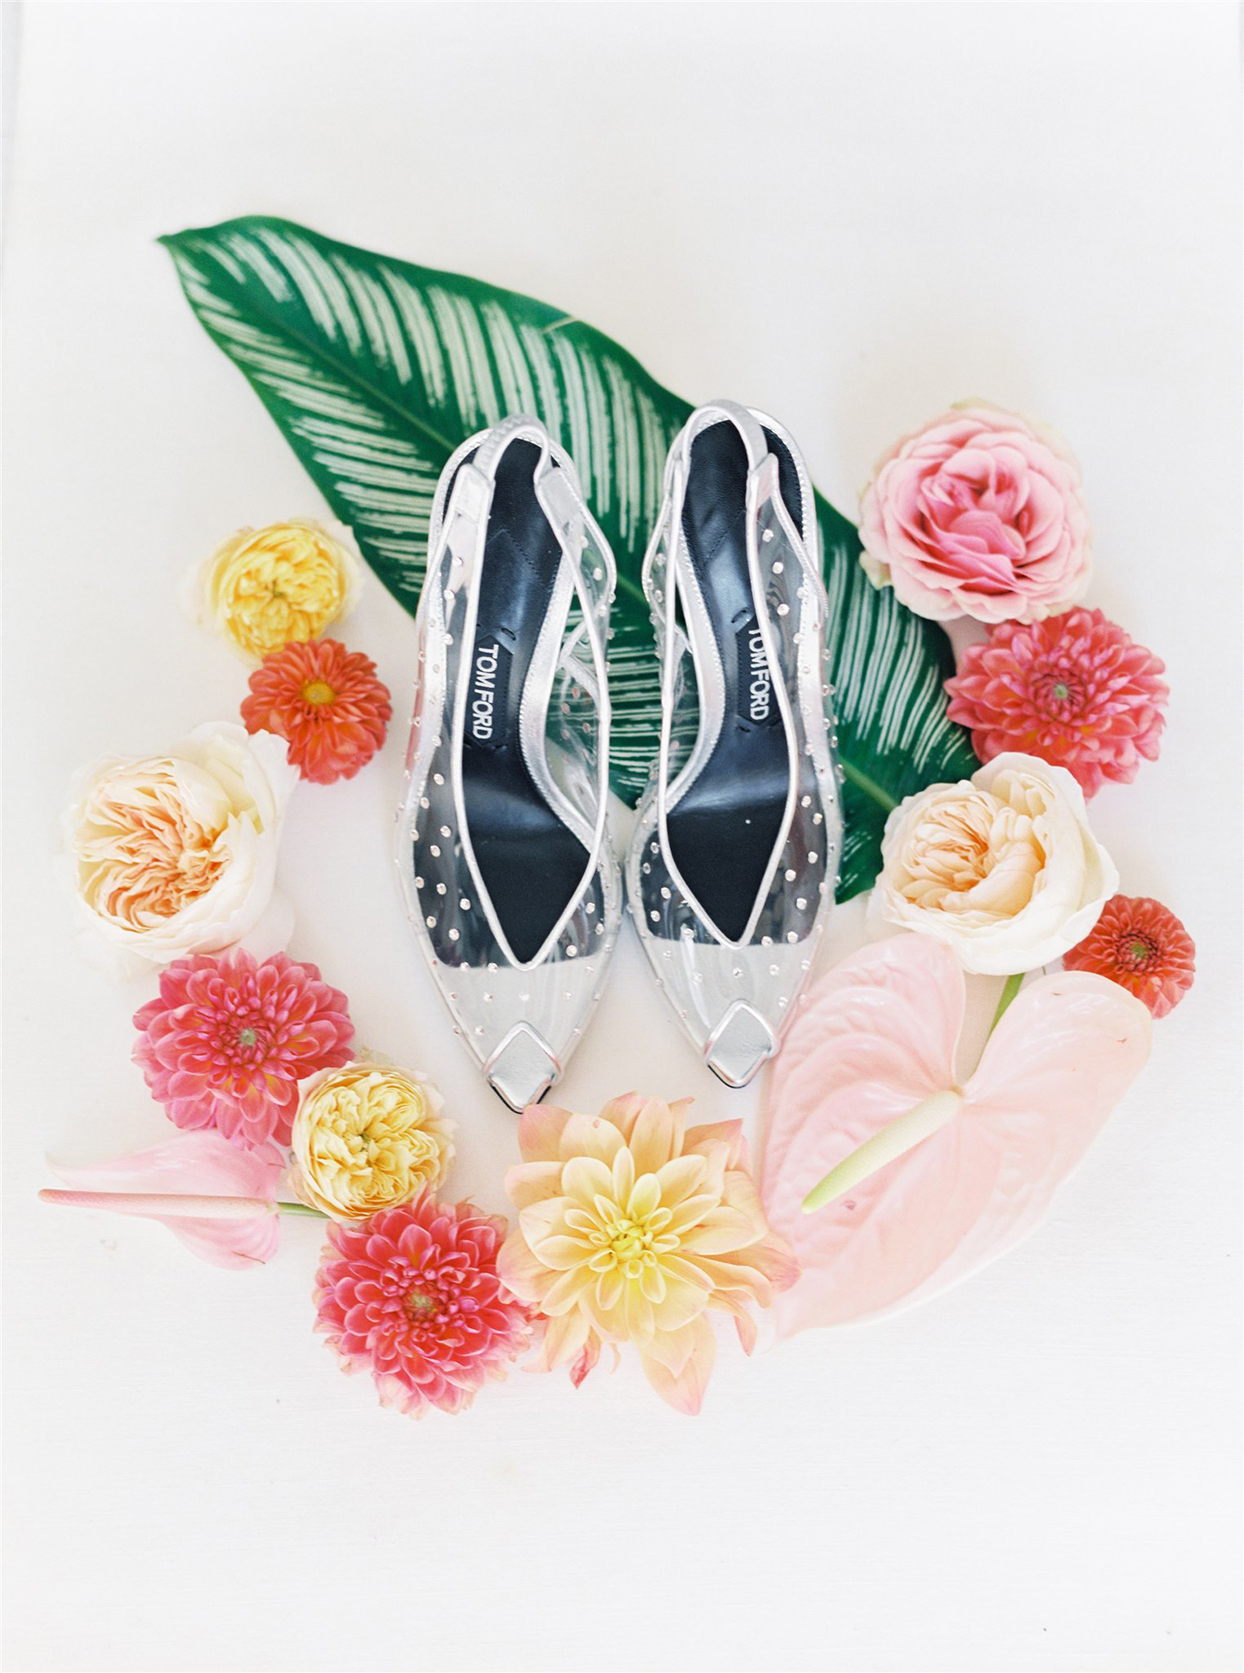 clear bridal shoes with tropical pink and yellow florals